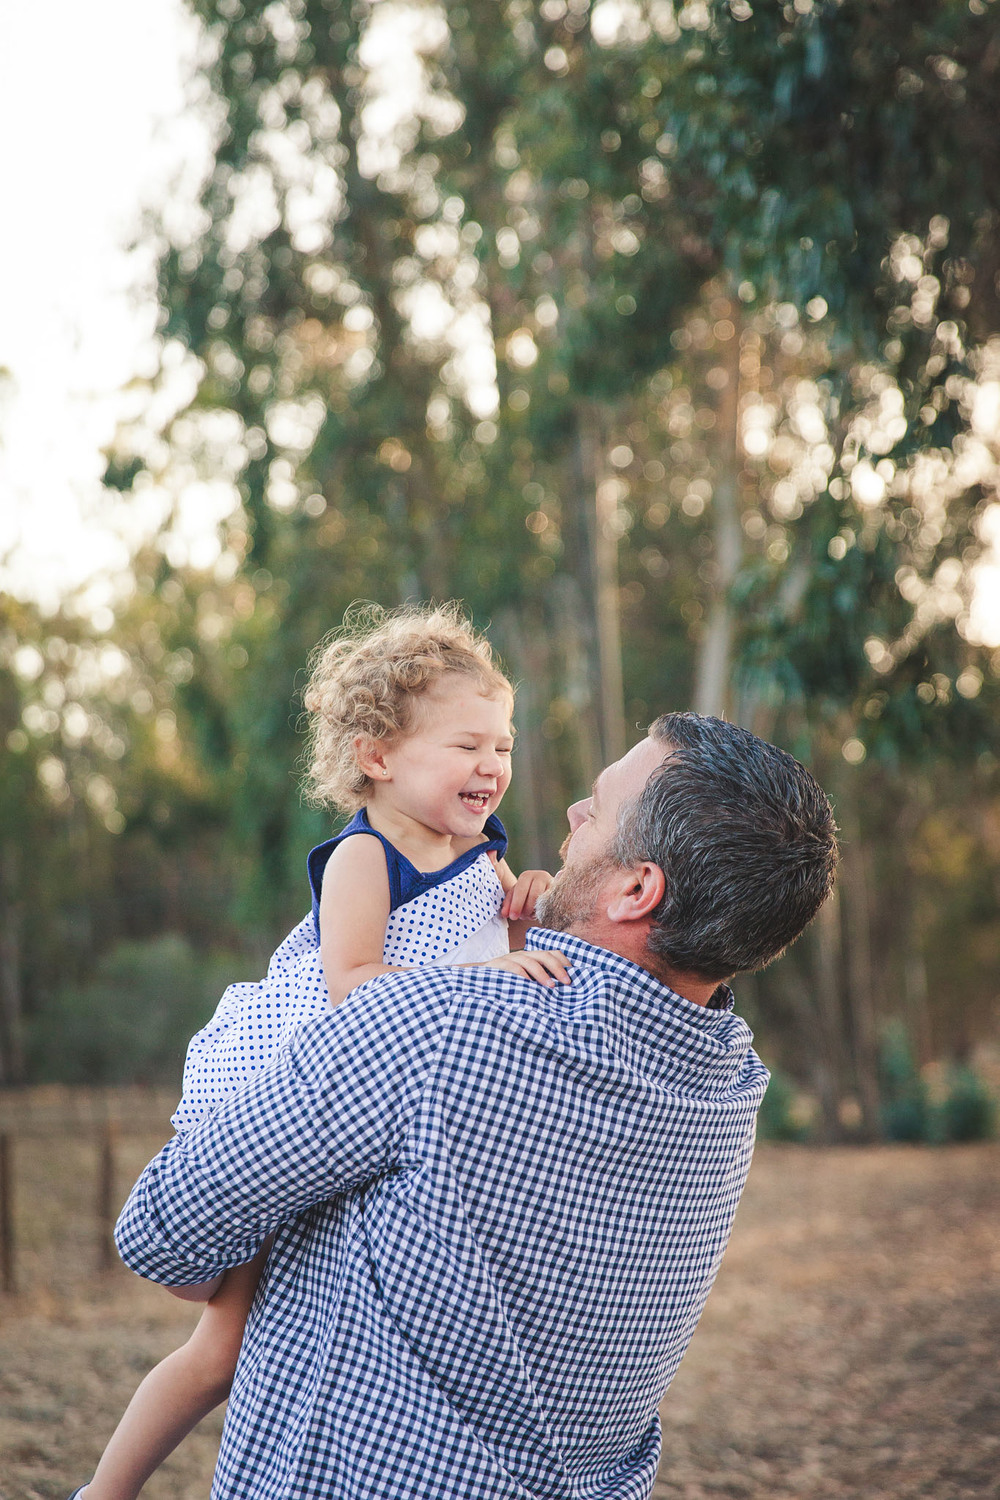 A father hold his young daughter in his arms over his head while she laughs with delight in this family session by Twinkle Star Photography, a San Luis Obispo California family film photographer.